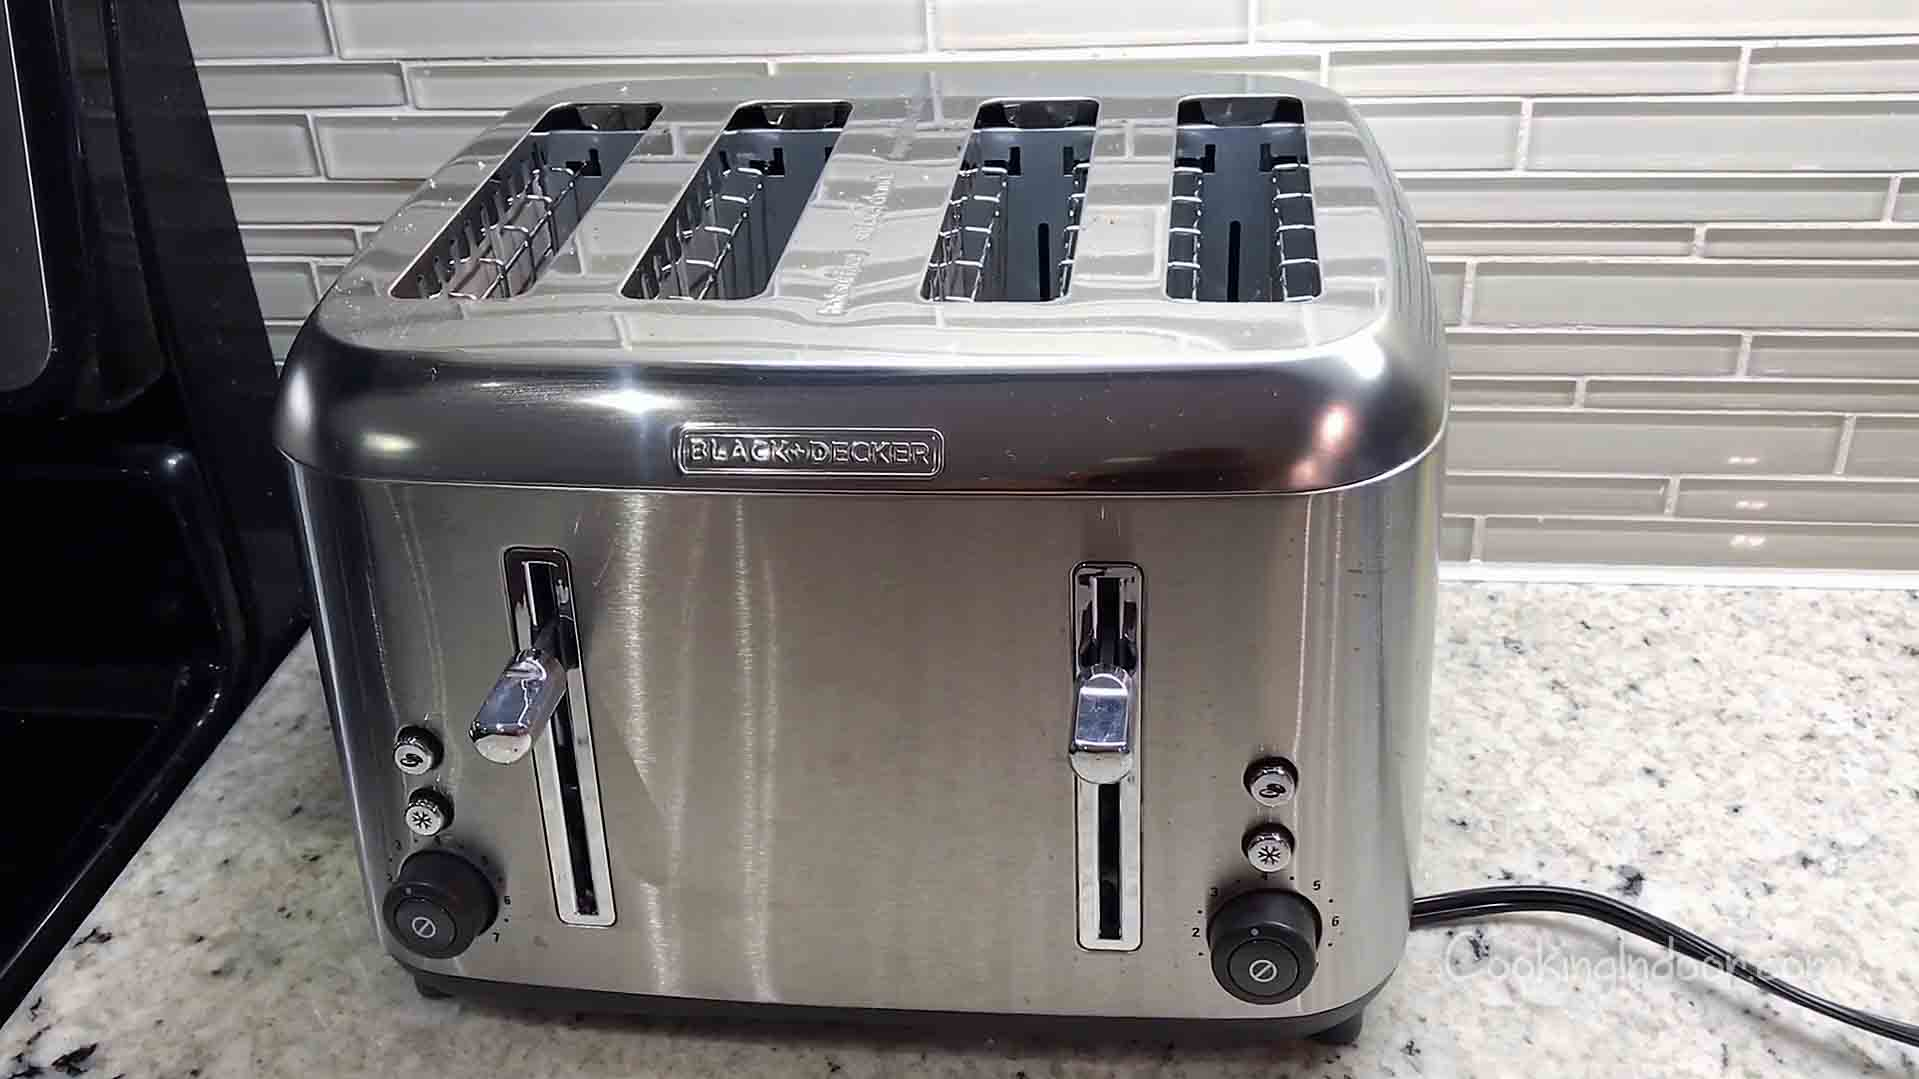 Best 4 bread toaster